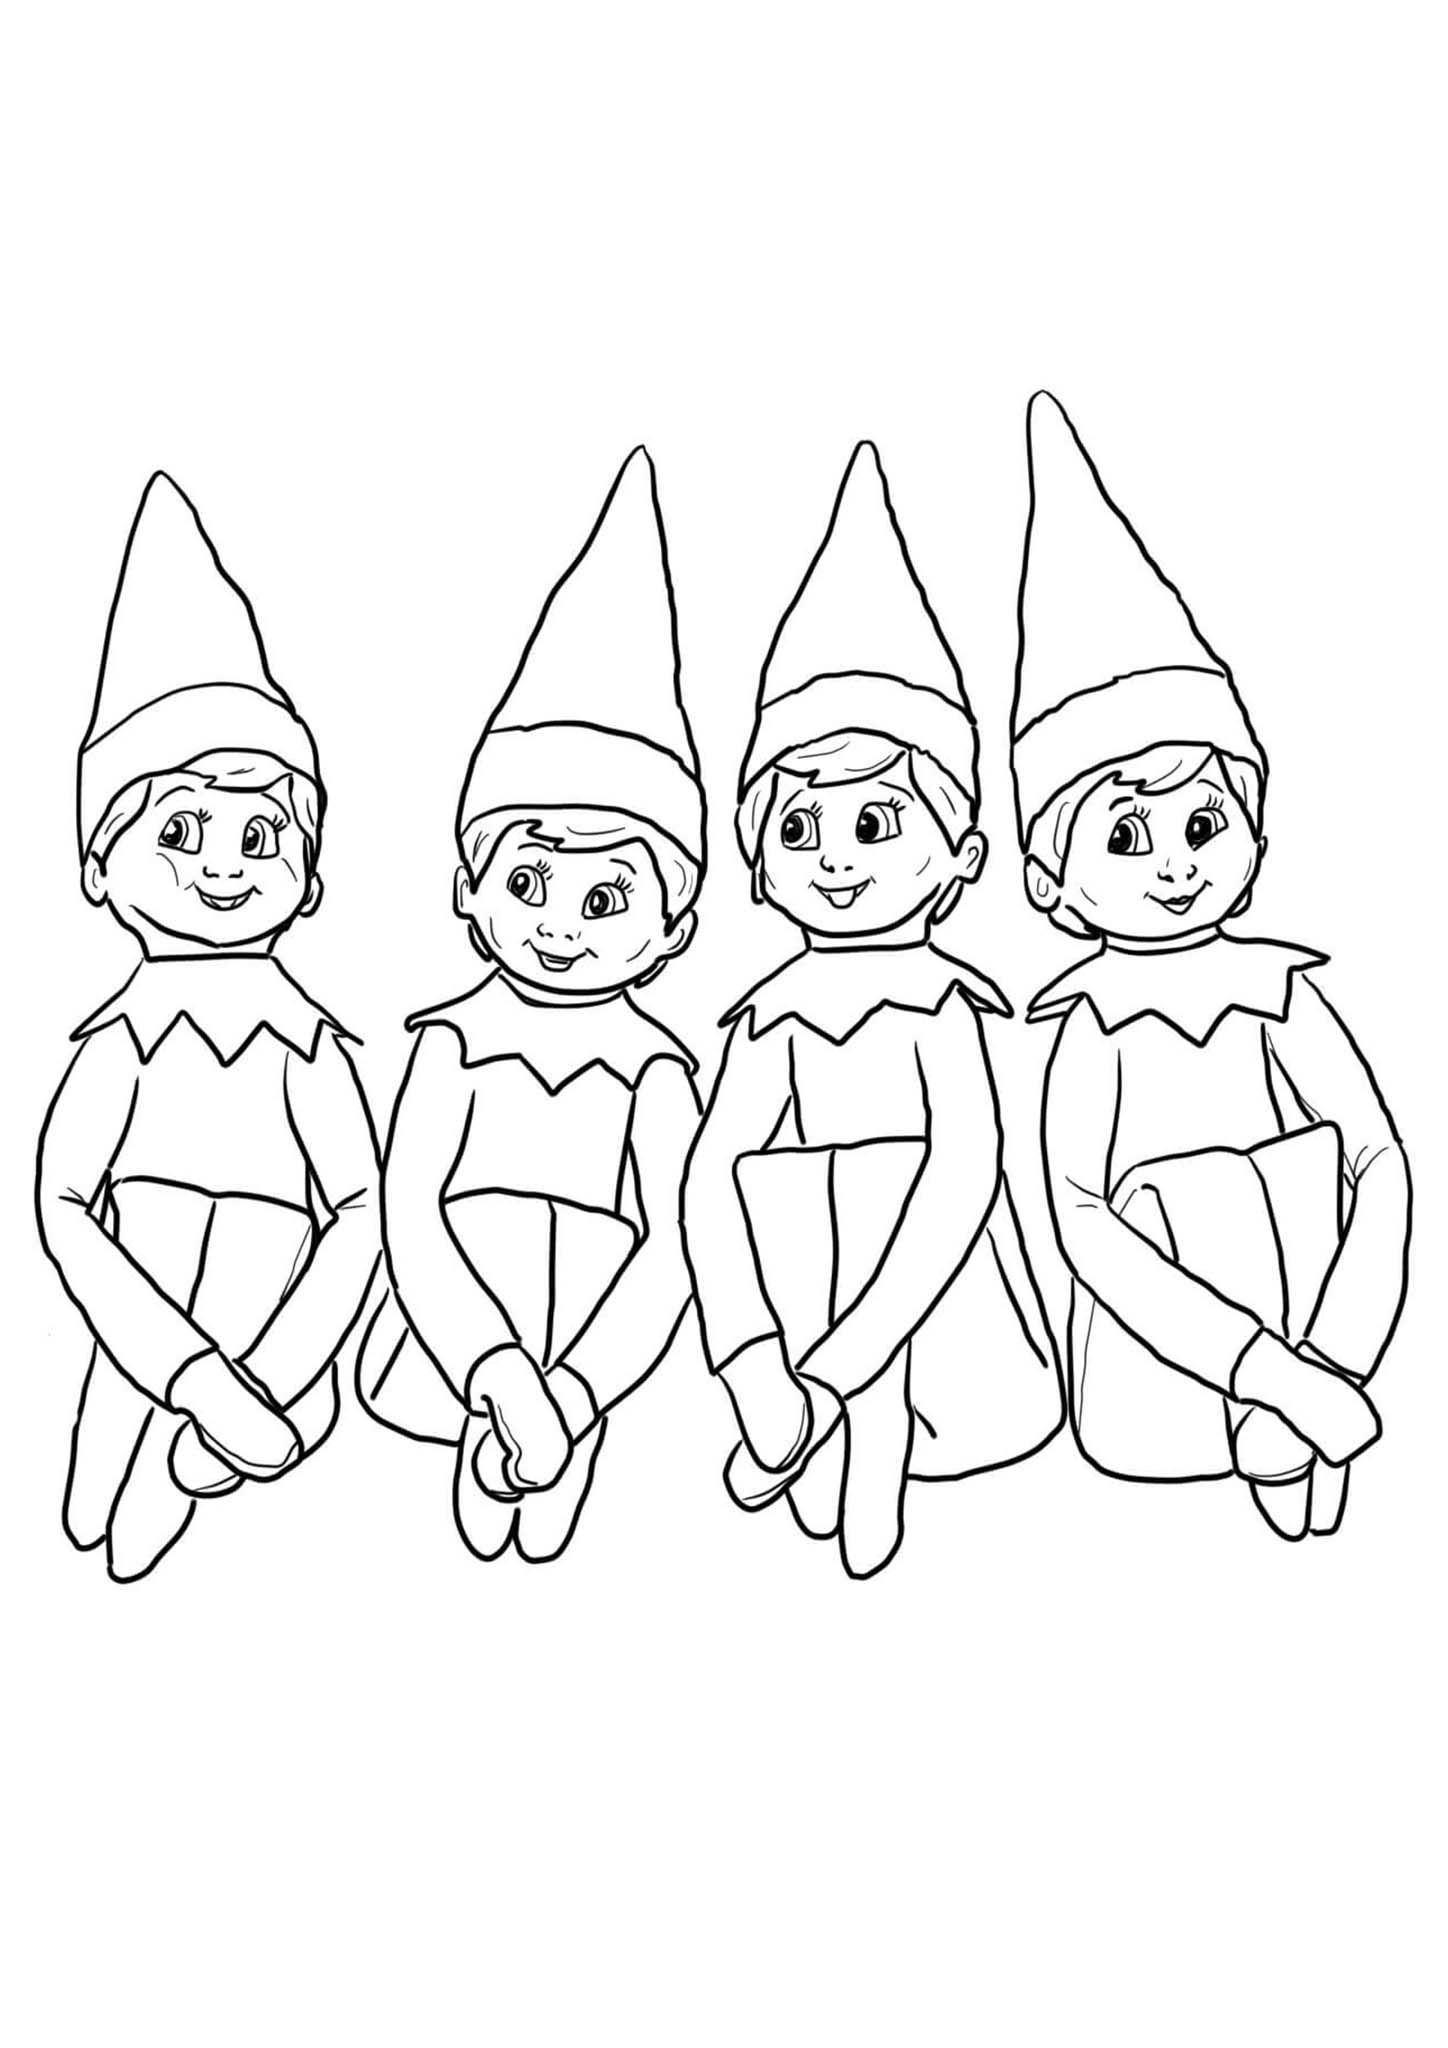 Free Printable Elf On The Shelf Coloring Pages Valentines Day Coloring Page Coloring Pages Christmas Coloring Pages